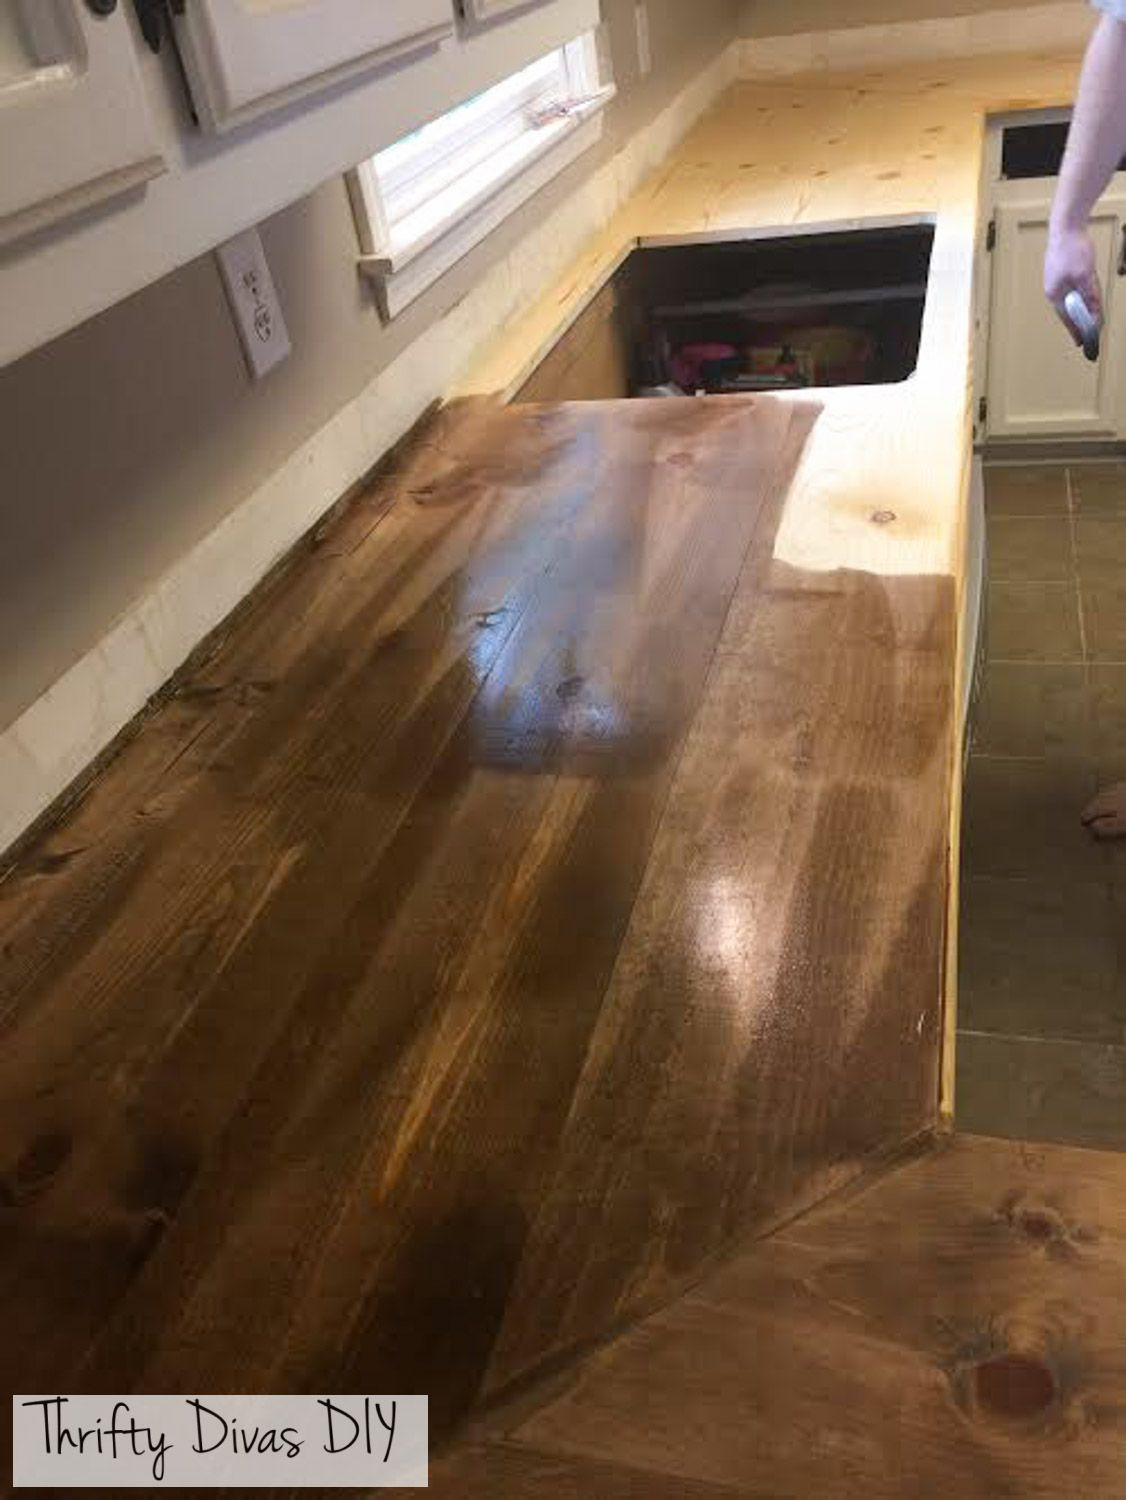 Best ideas about DIY Wood Plank Countertops . Save or Pin Thrifty Divas DIY Wide Plank Butcher Block Countertops Now.